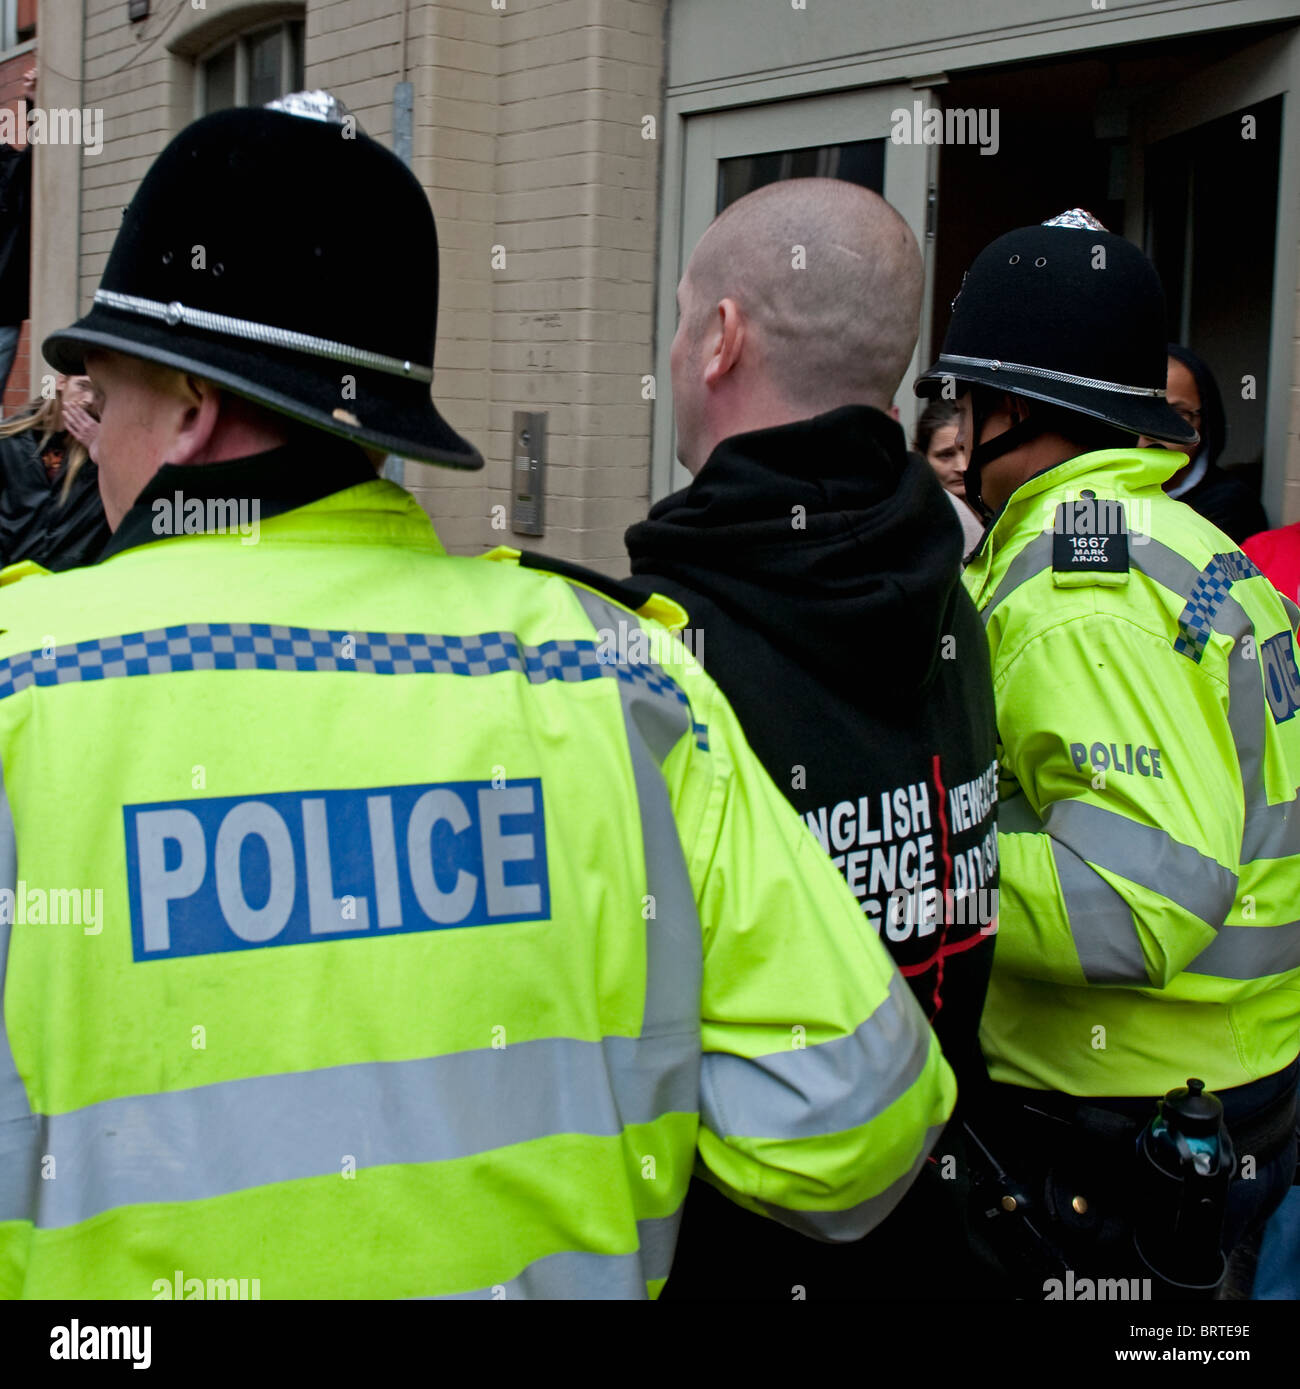 Police take away an EDL member as The English Defence League demonstrate in Leicester. 9th October 2010. Stock Photo